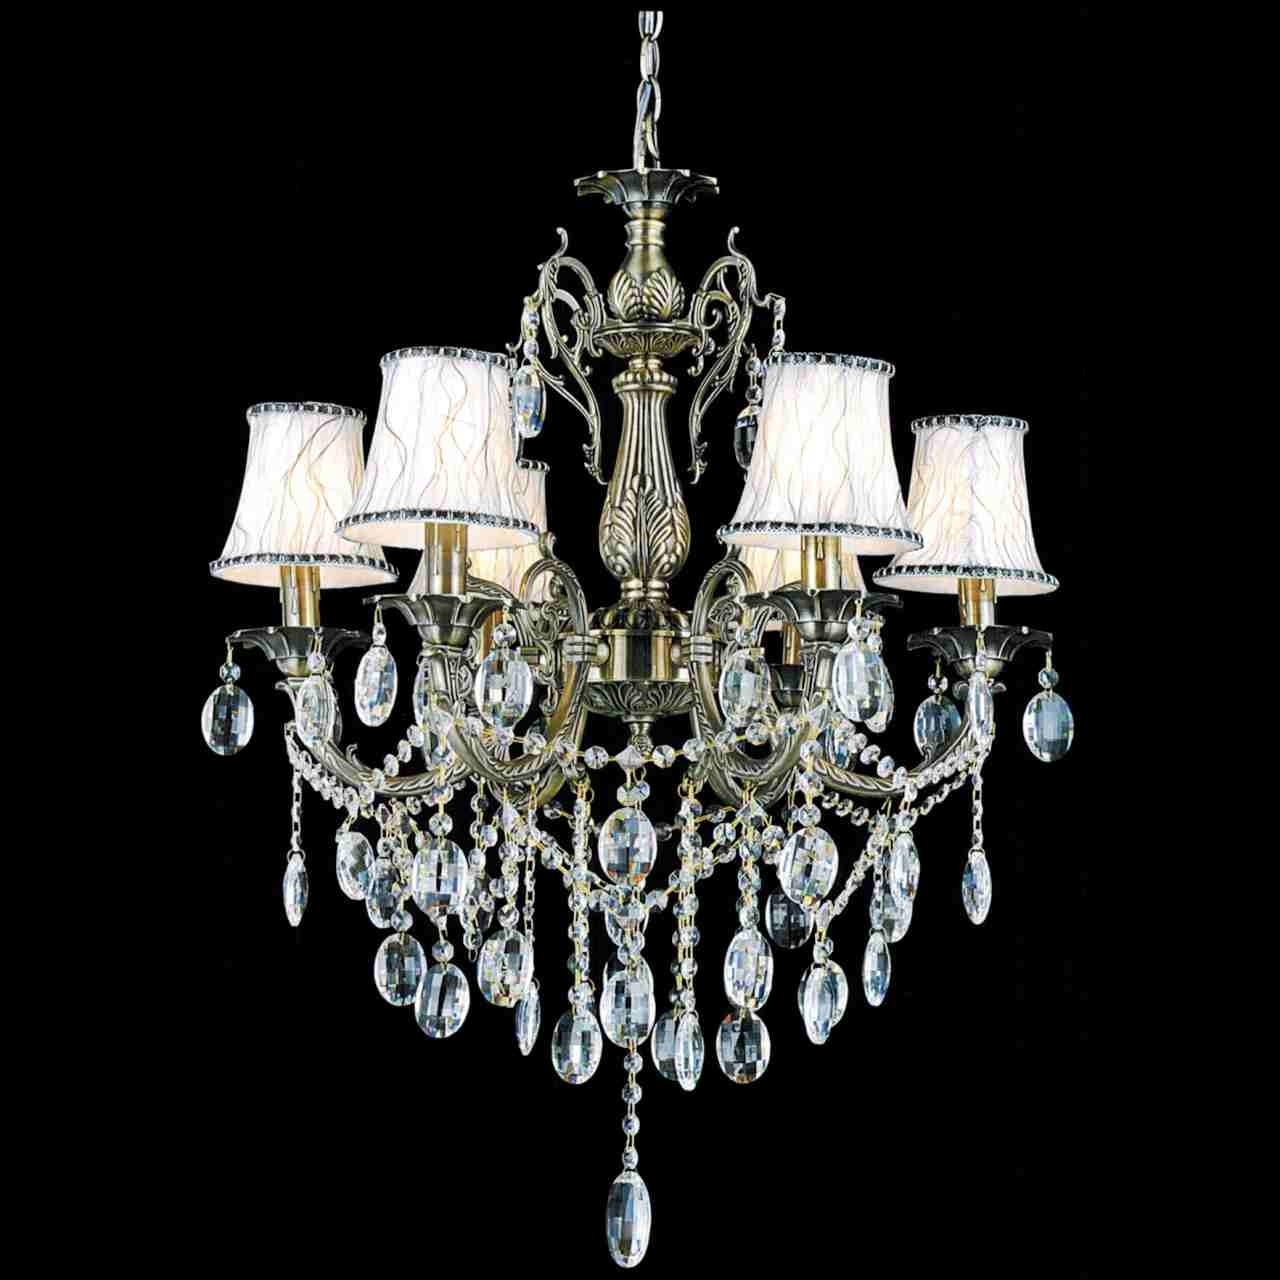 Chandelier Lampshades Intended For Fashionable Brizzo Lighting Stores (View 3 of 15)